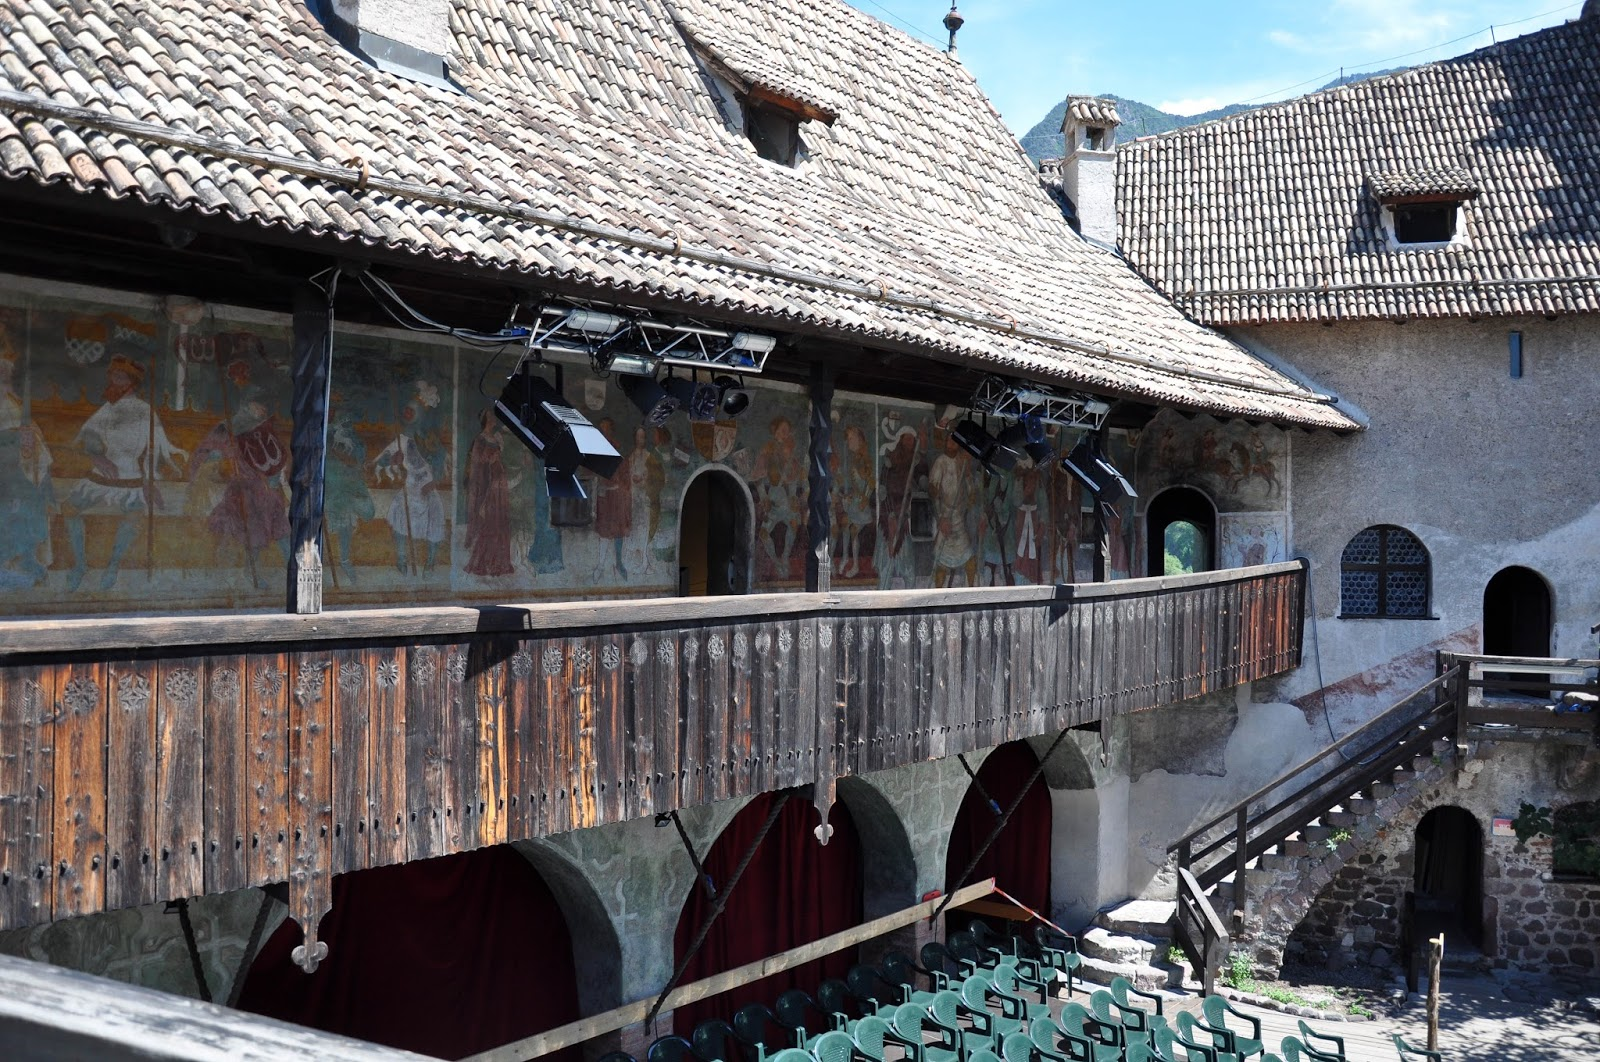 The painted veranda, Runkelstein Castle, Bolzano, South Tyrol, Italy